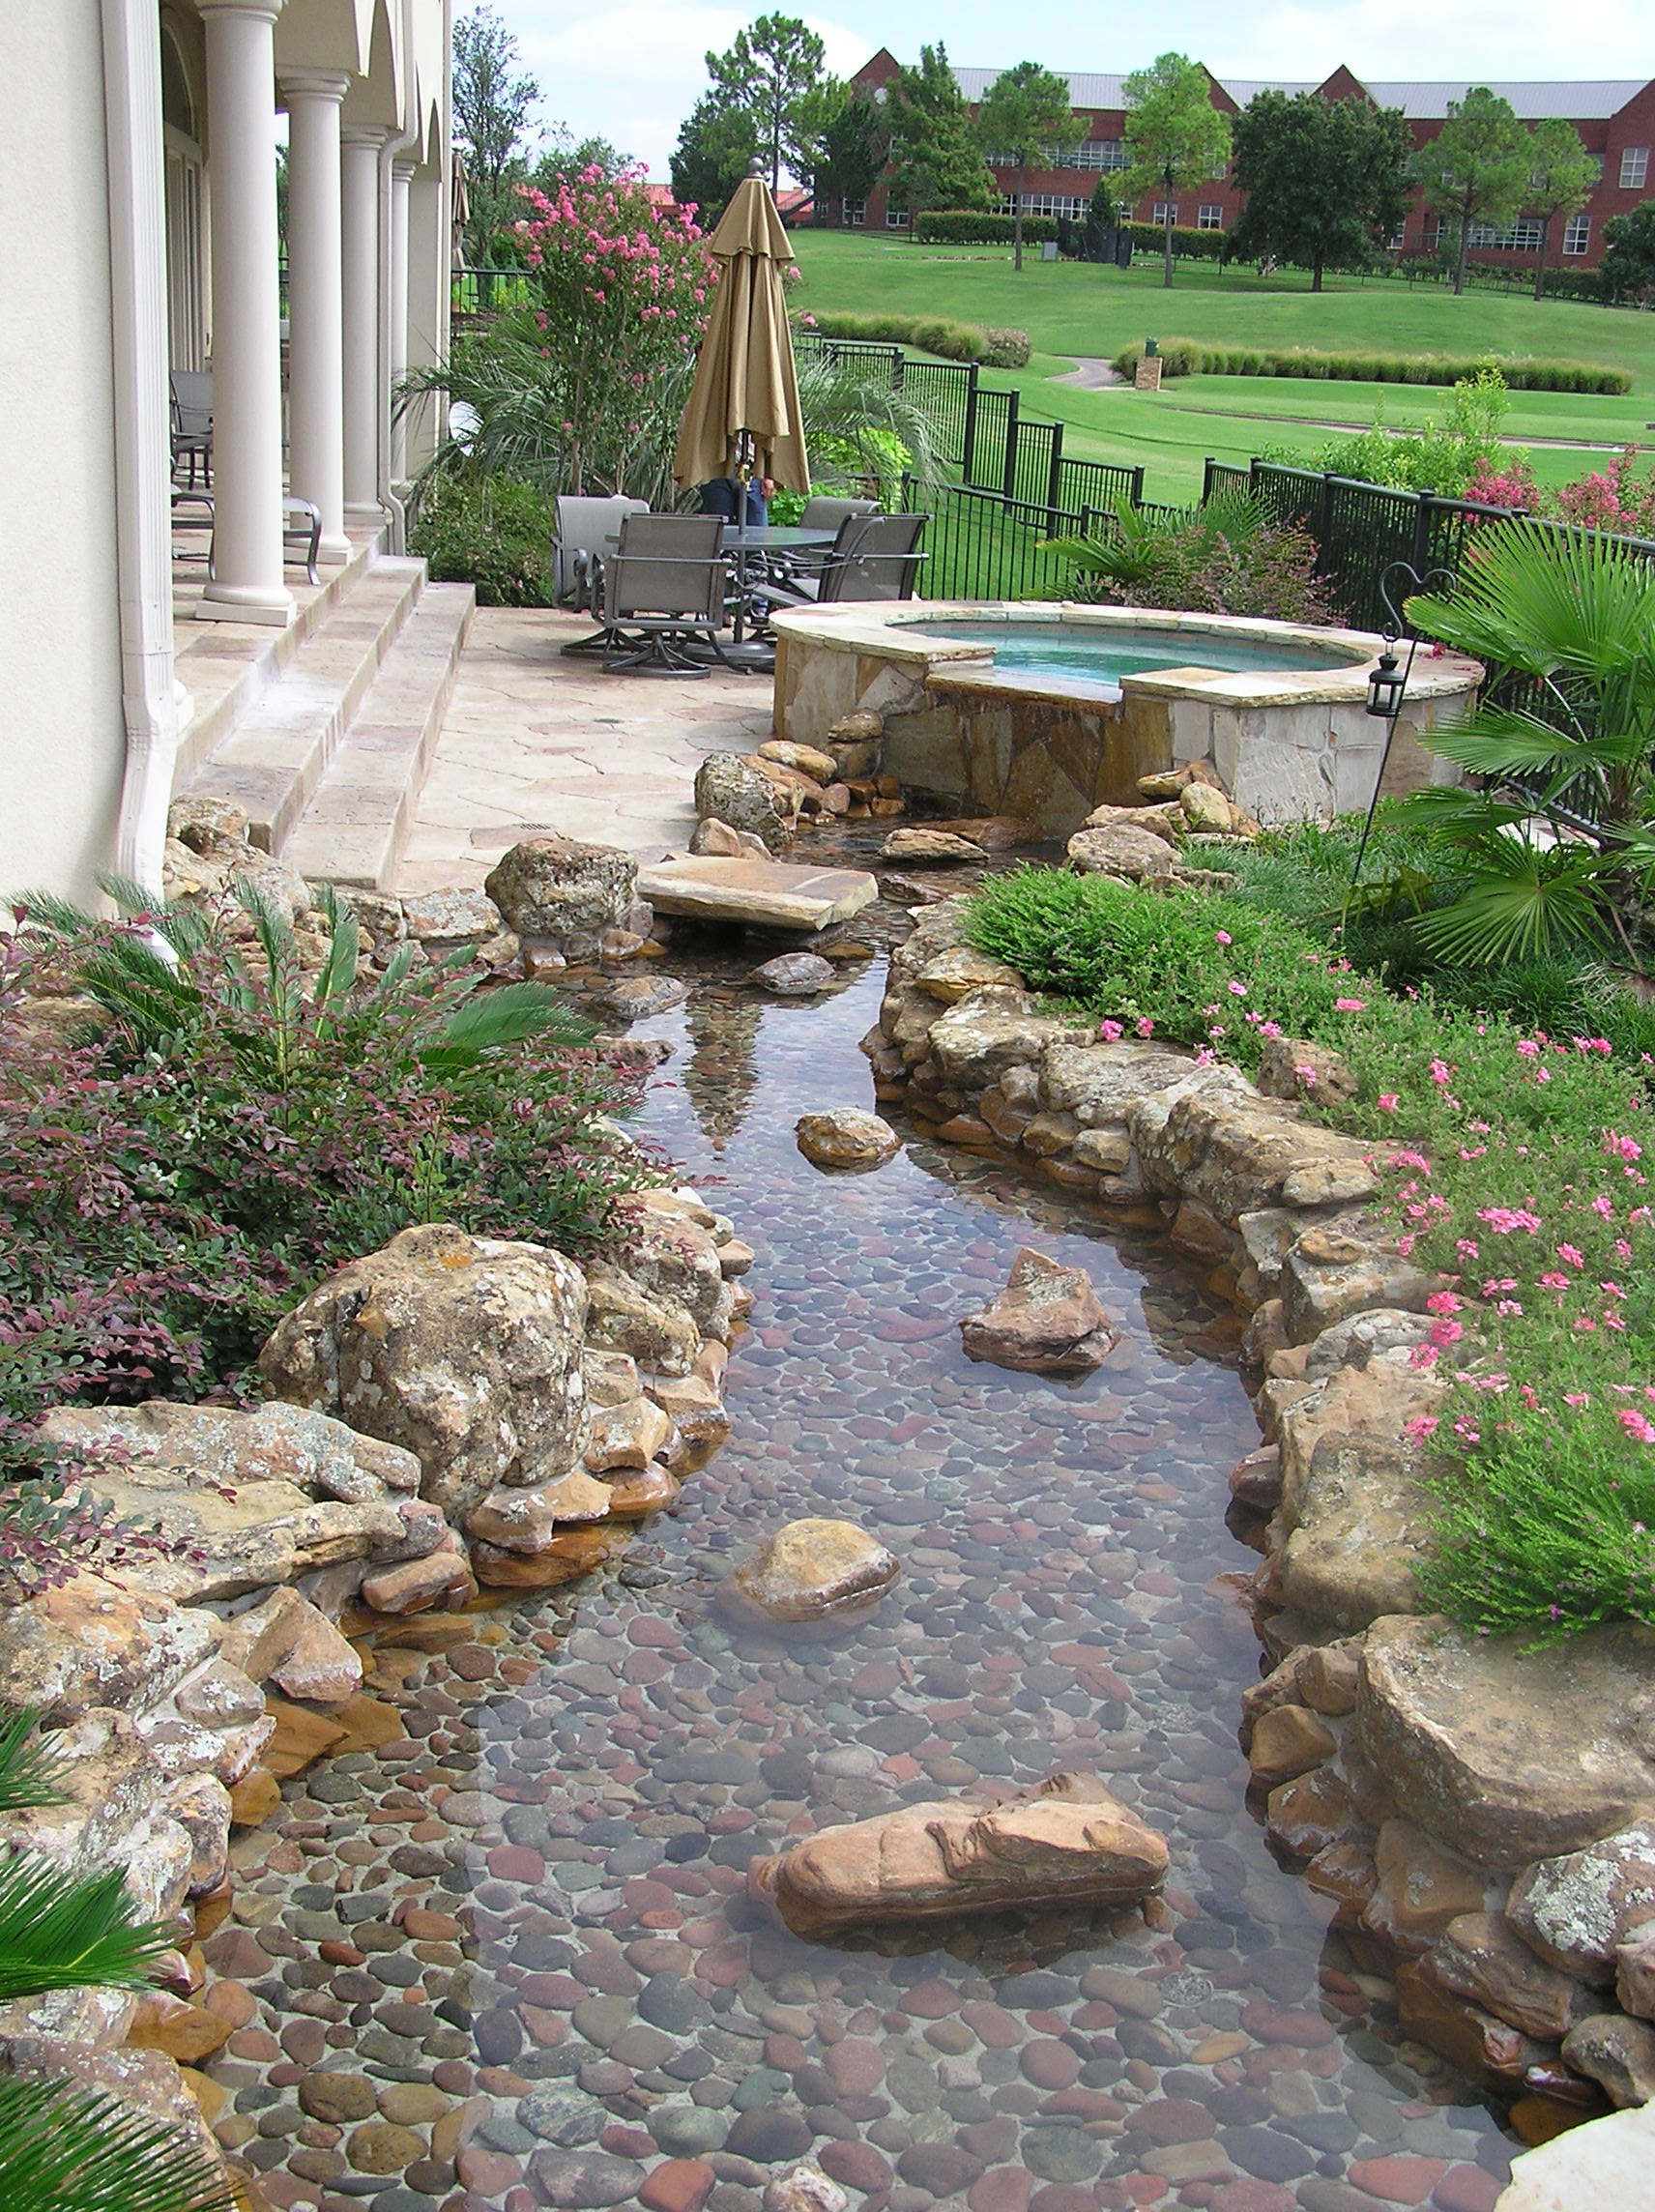 1000 images about patio lawn ideas on pinterest lawn for Rock landscaping ideas